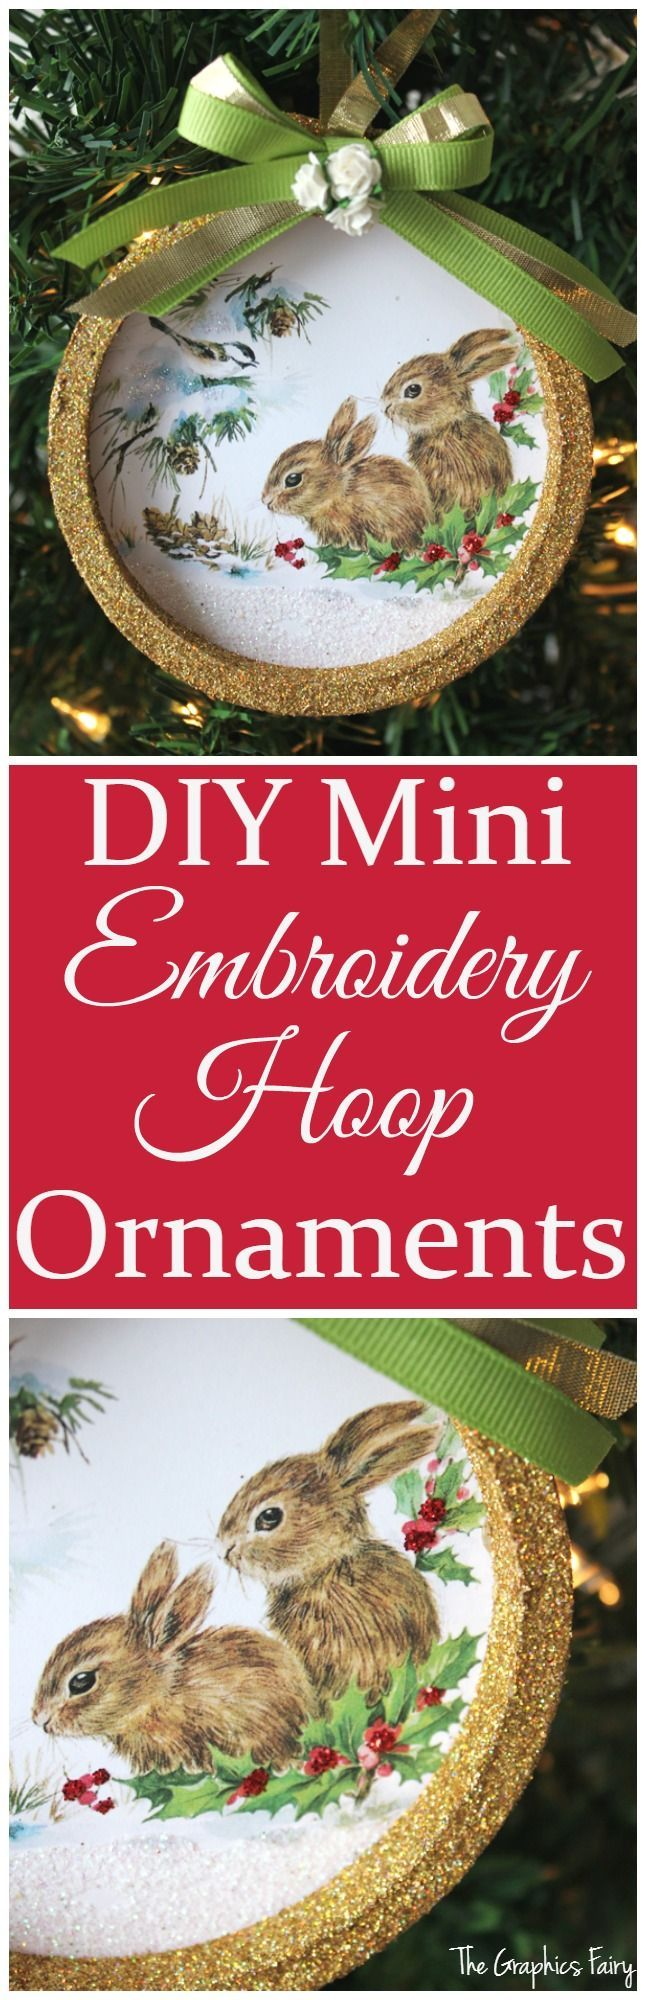 Mini Embroidery Hoop Ornament - The Graphics Fairy